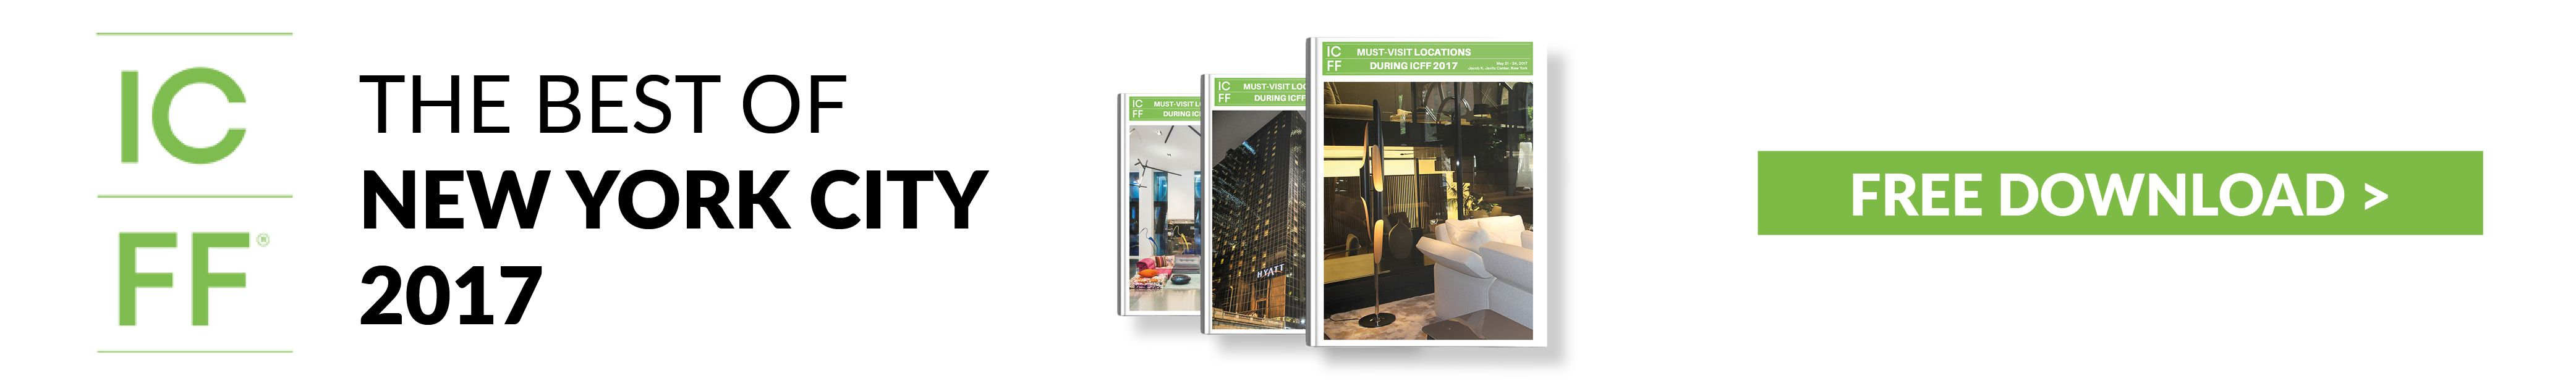 icff 2017 ICFF 2017: Celebrate Design in NYC ICFF1 banner home ICFF BRABBU'S Ultimate guide for ICFF & New York Design Week ICFF1 banner home ICFF 2017 ICFF 2017: Get Inspired by Covet House Interiors ICFF1 banner home ICFF 2017 Don't Miss ICFF 2017 Highlights ICFF1 banner home